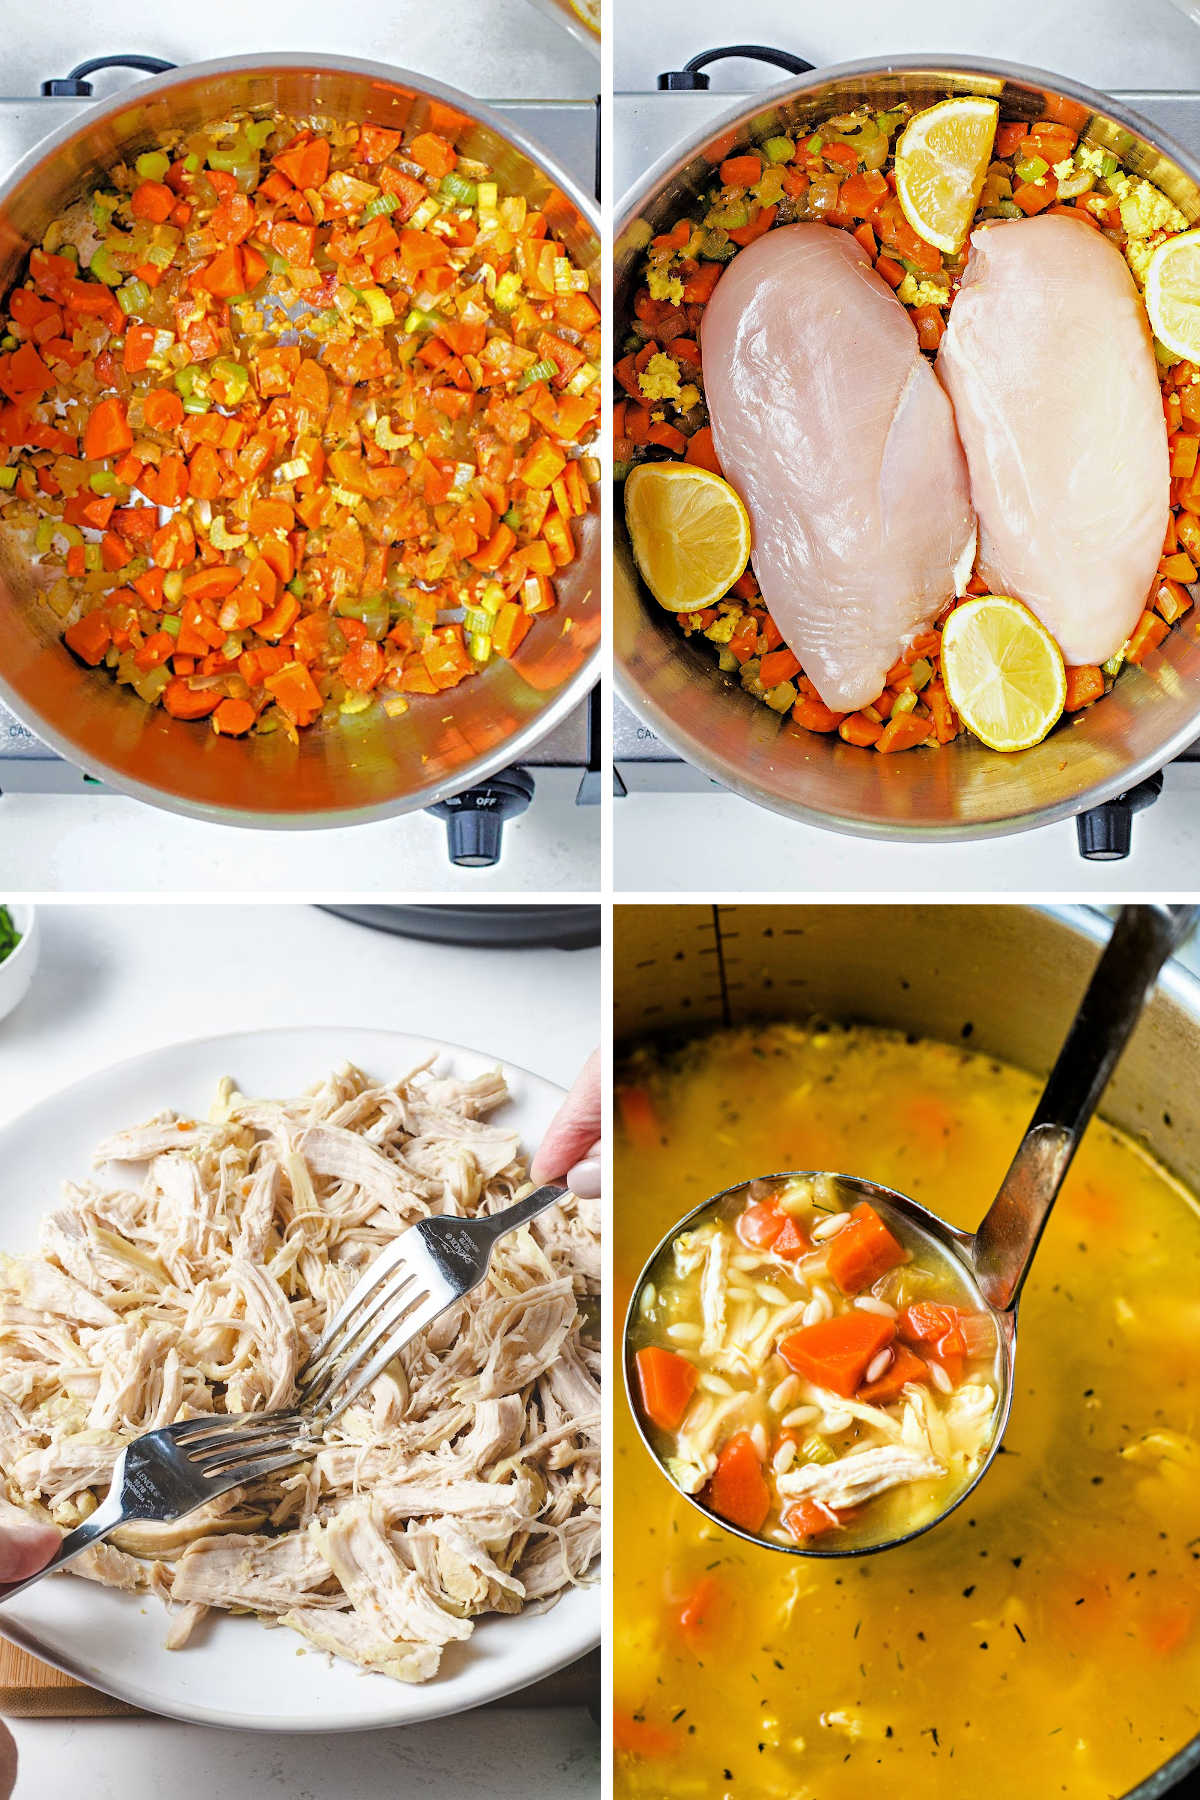 process steps for making lemon chicken orzo soup: saute carrots, celery, and onion; add chicken breasts and lemon to the pot; shred chicken with 2 forks; cook orzo in broth.